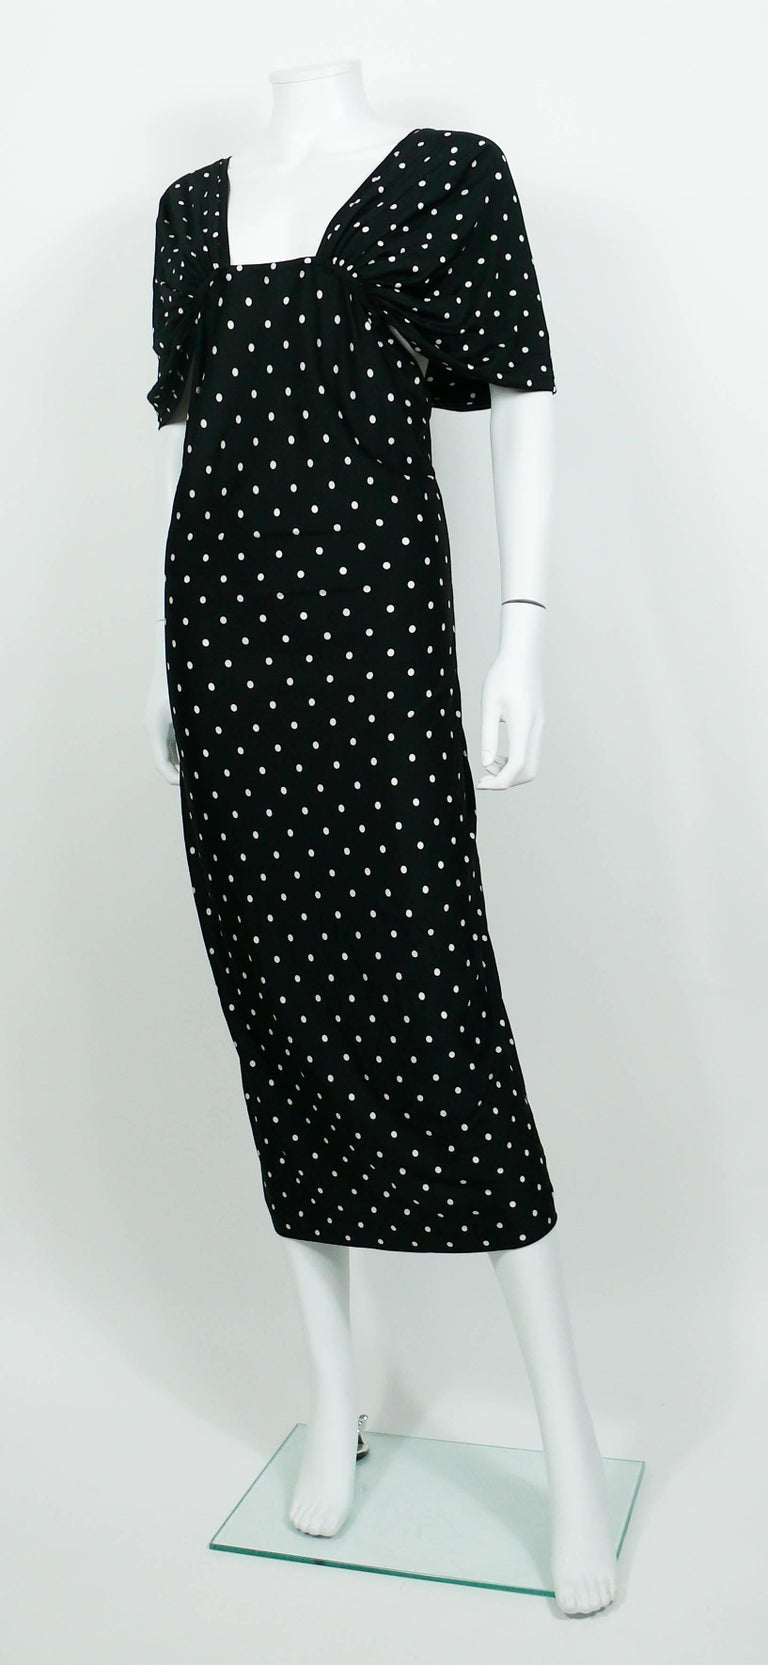 Patrick Kelly Vintage Black White Polka Dot Dress US Size 10 For Sale 2